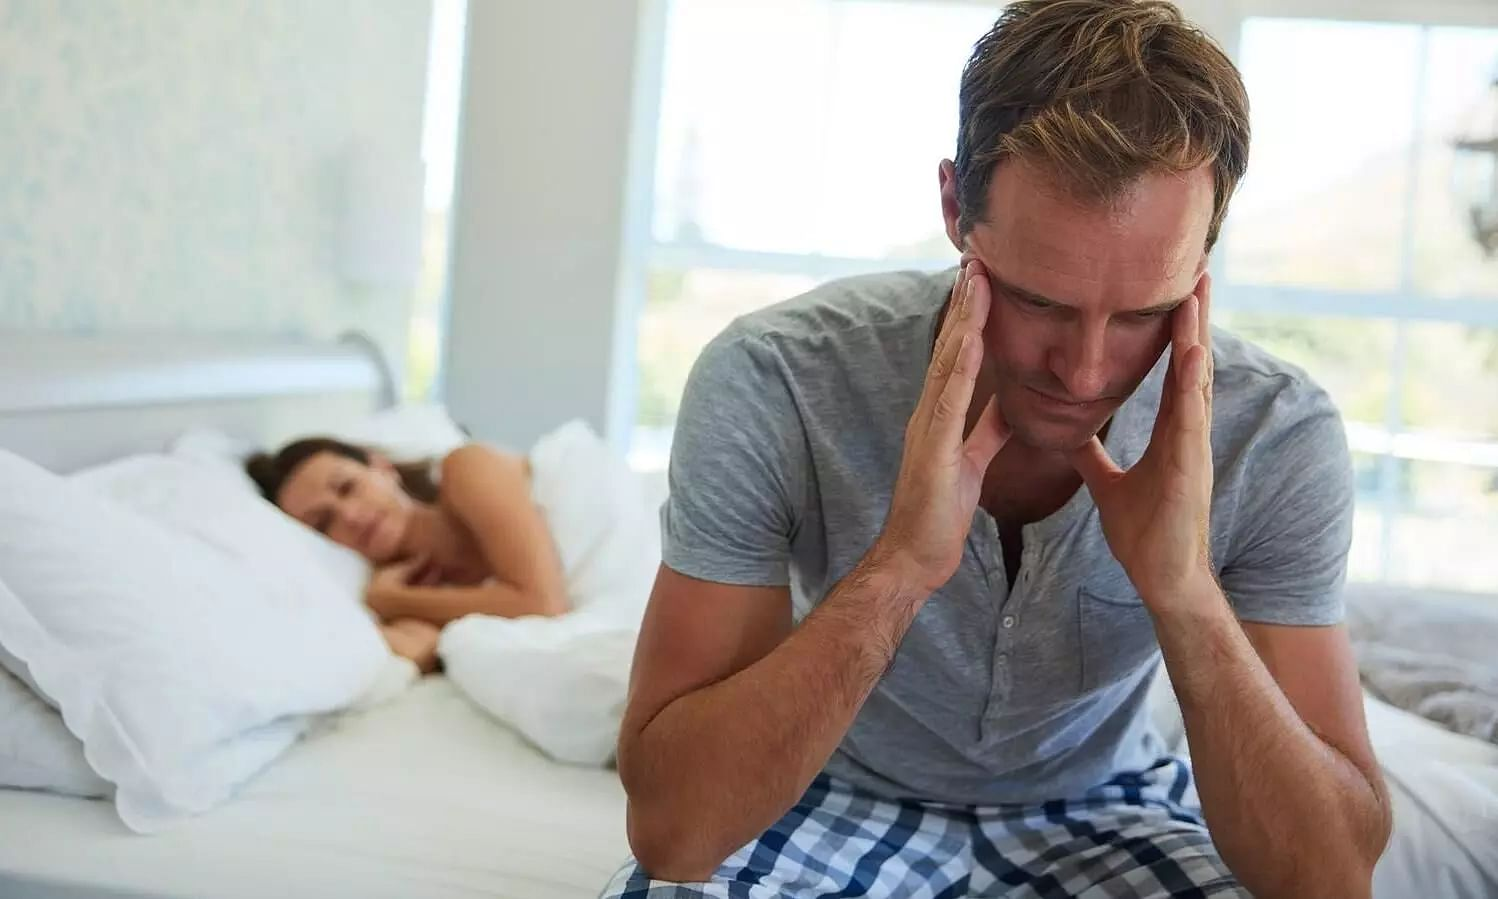 COVID-19 Vaccines Cause Erectile Dysfunction: Say Studies But Drug Manufacturers Refute Claims